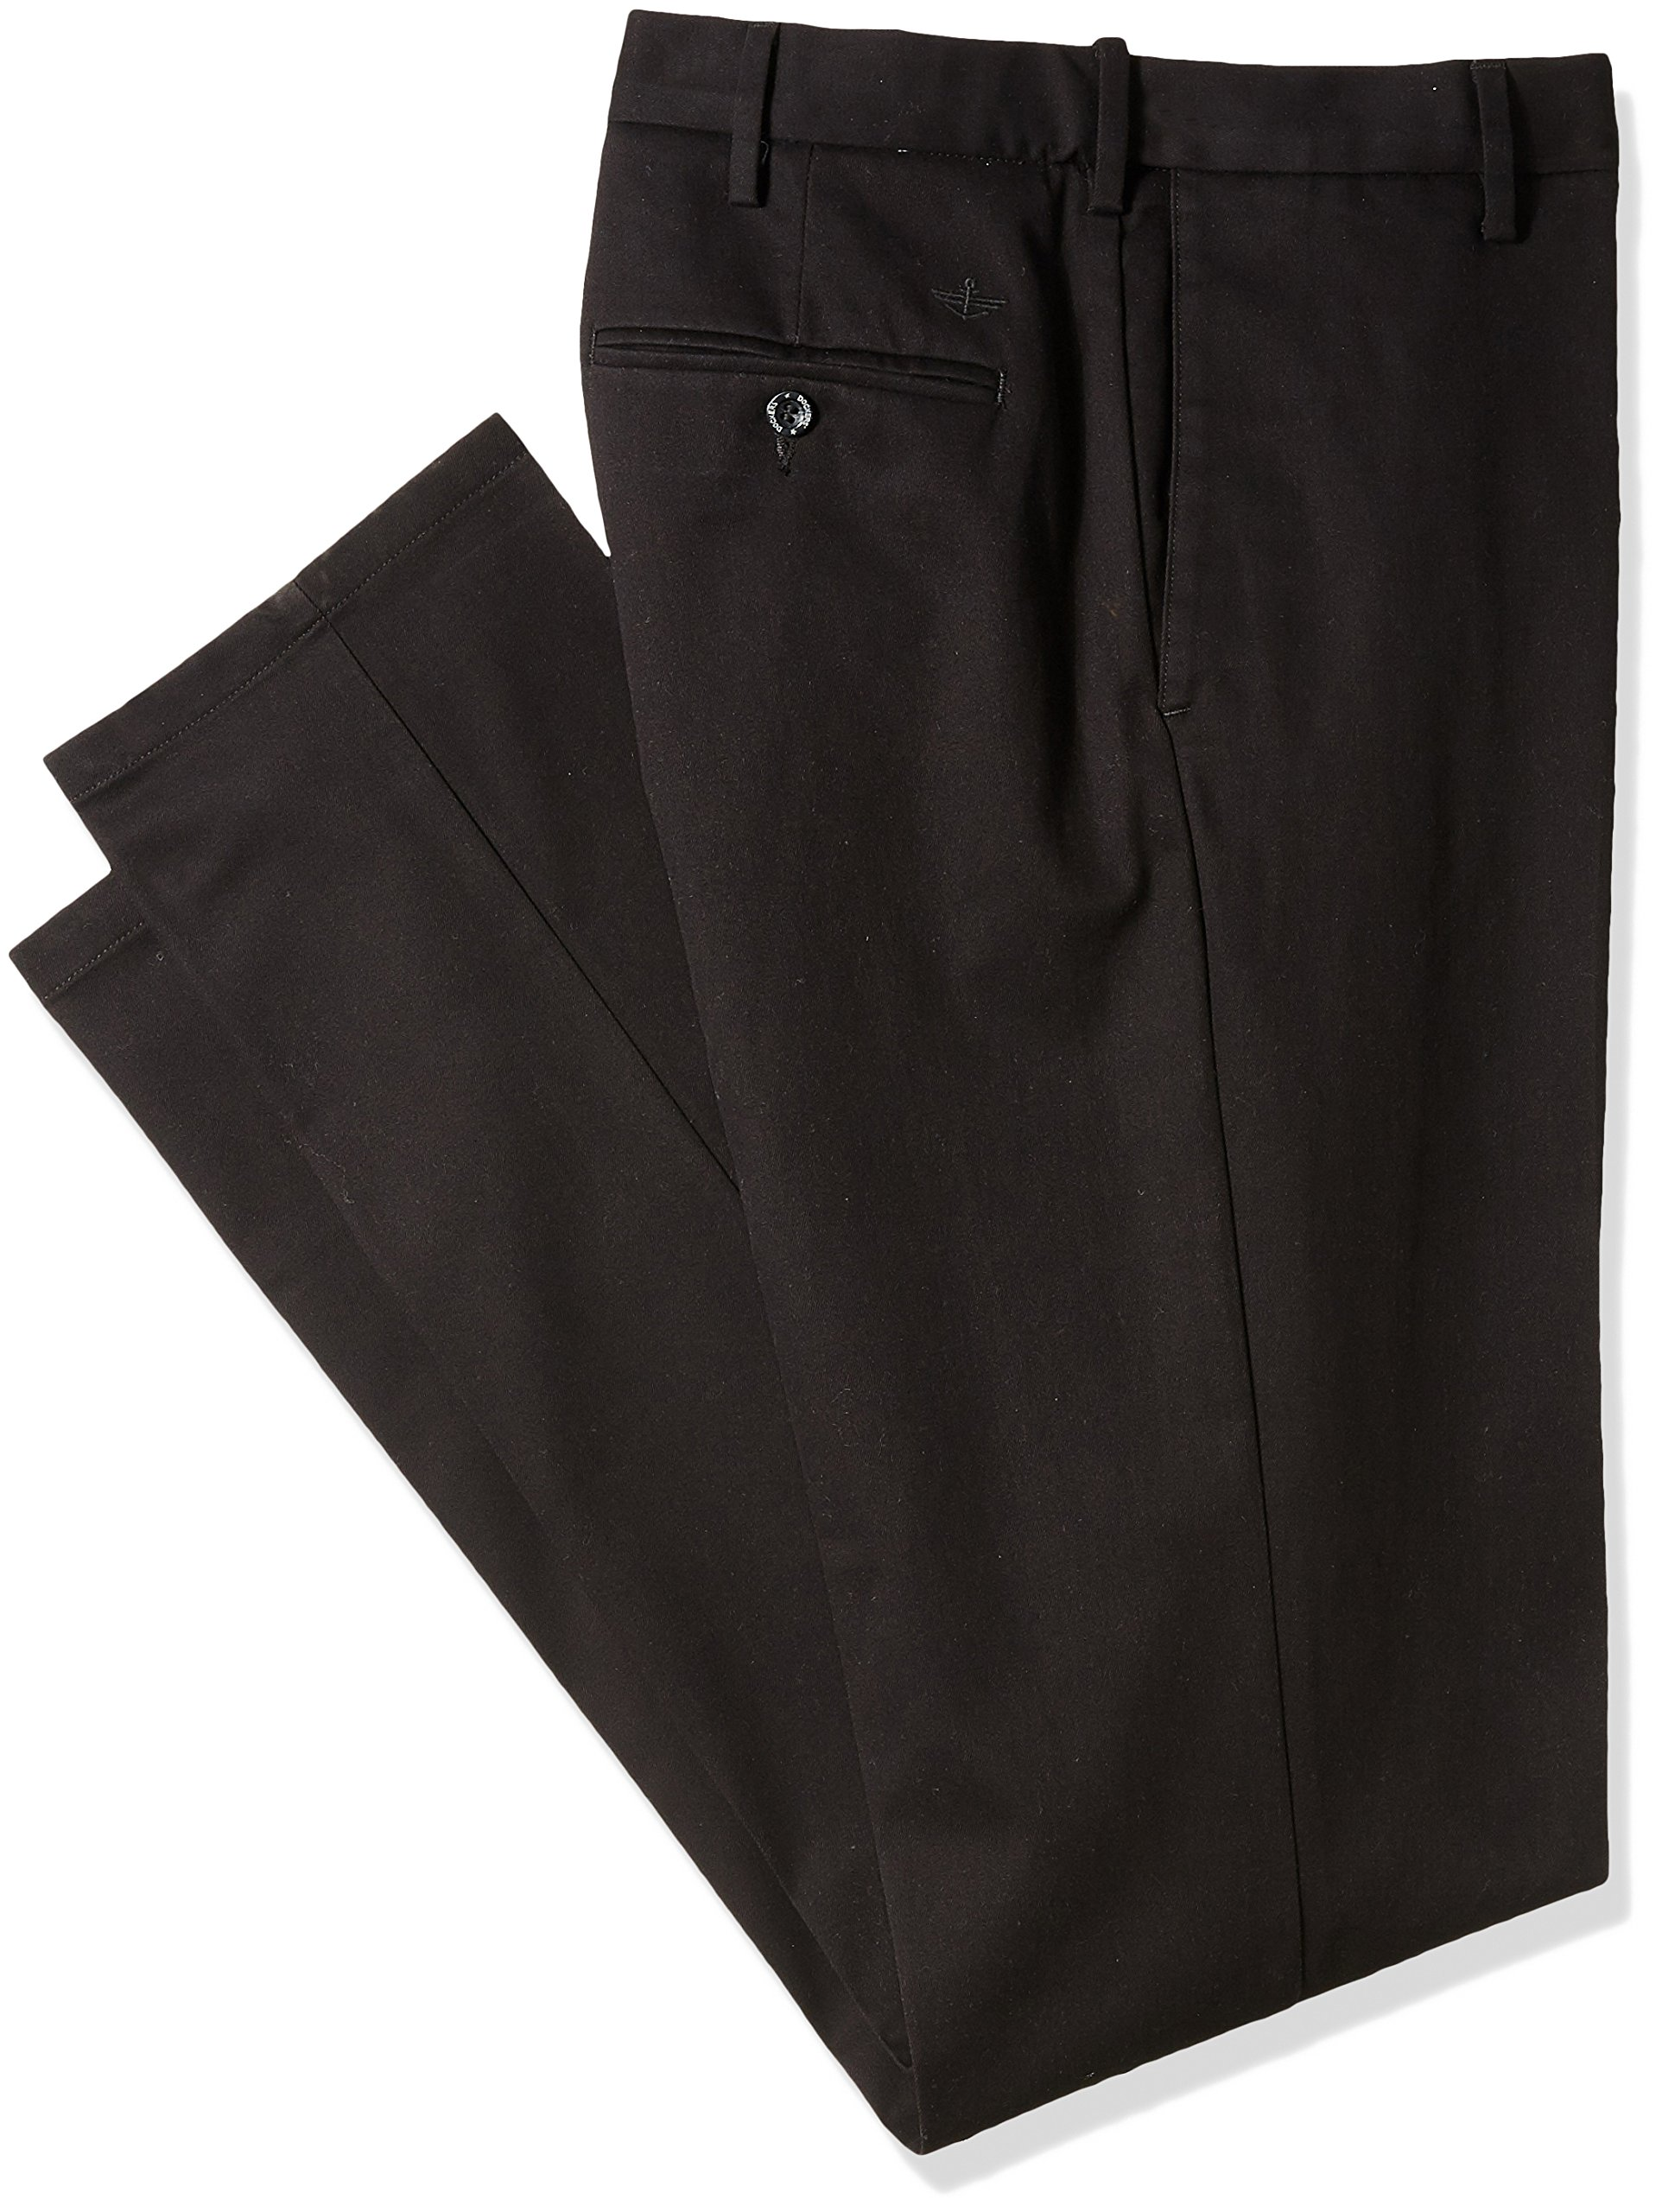 Dockers Men's Big and Tall Modern Tapered Fit Signature Khaki Pants, Black (Stretch), 46W x 29L by Dockers (Image #1)